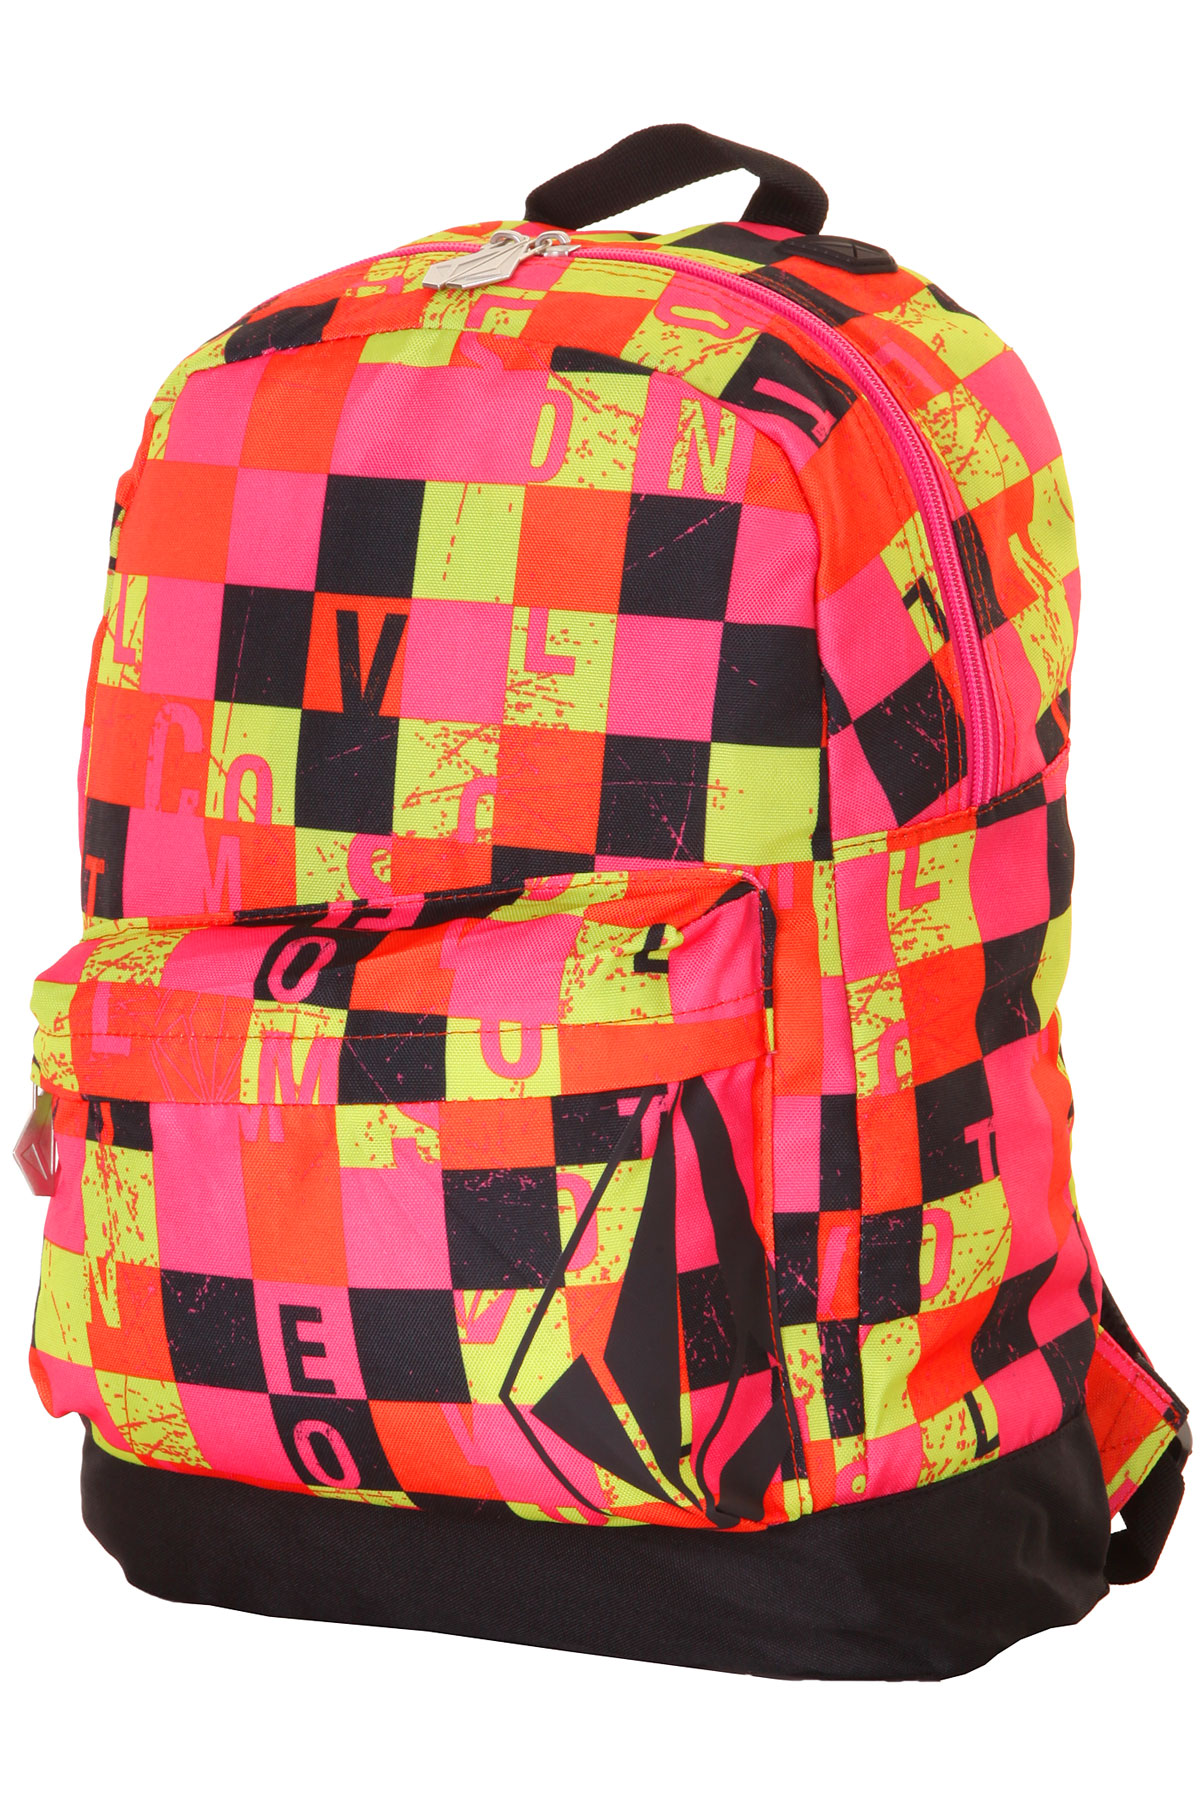 Cool Backpacks For School kcROh2bc